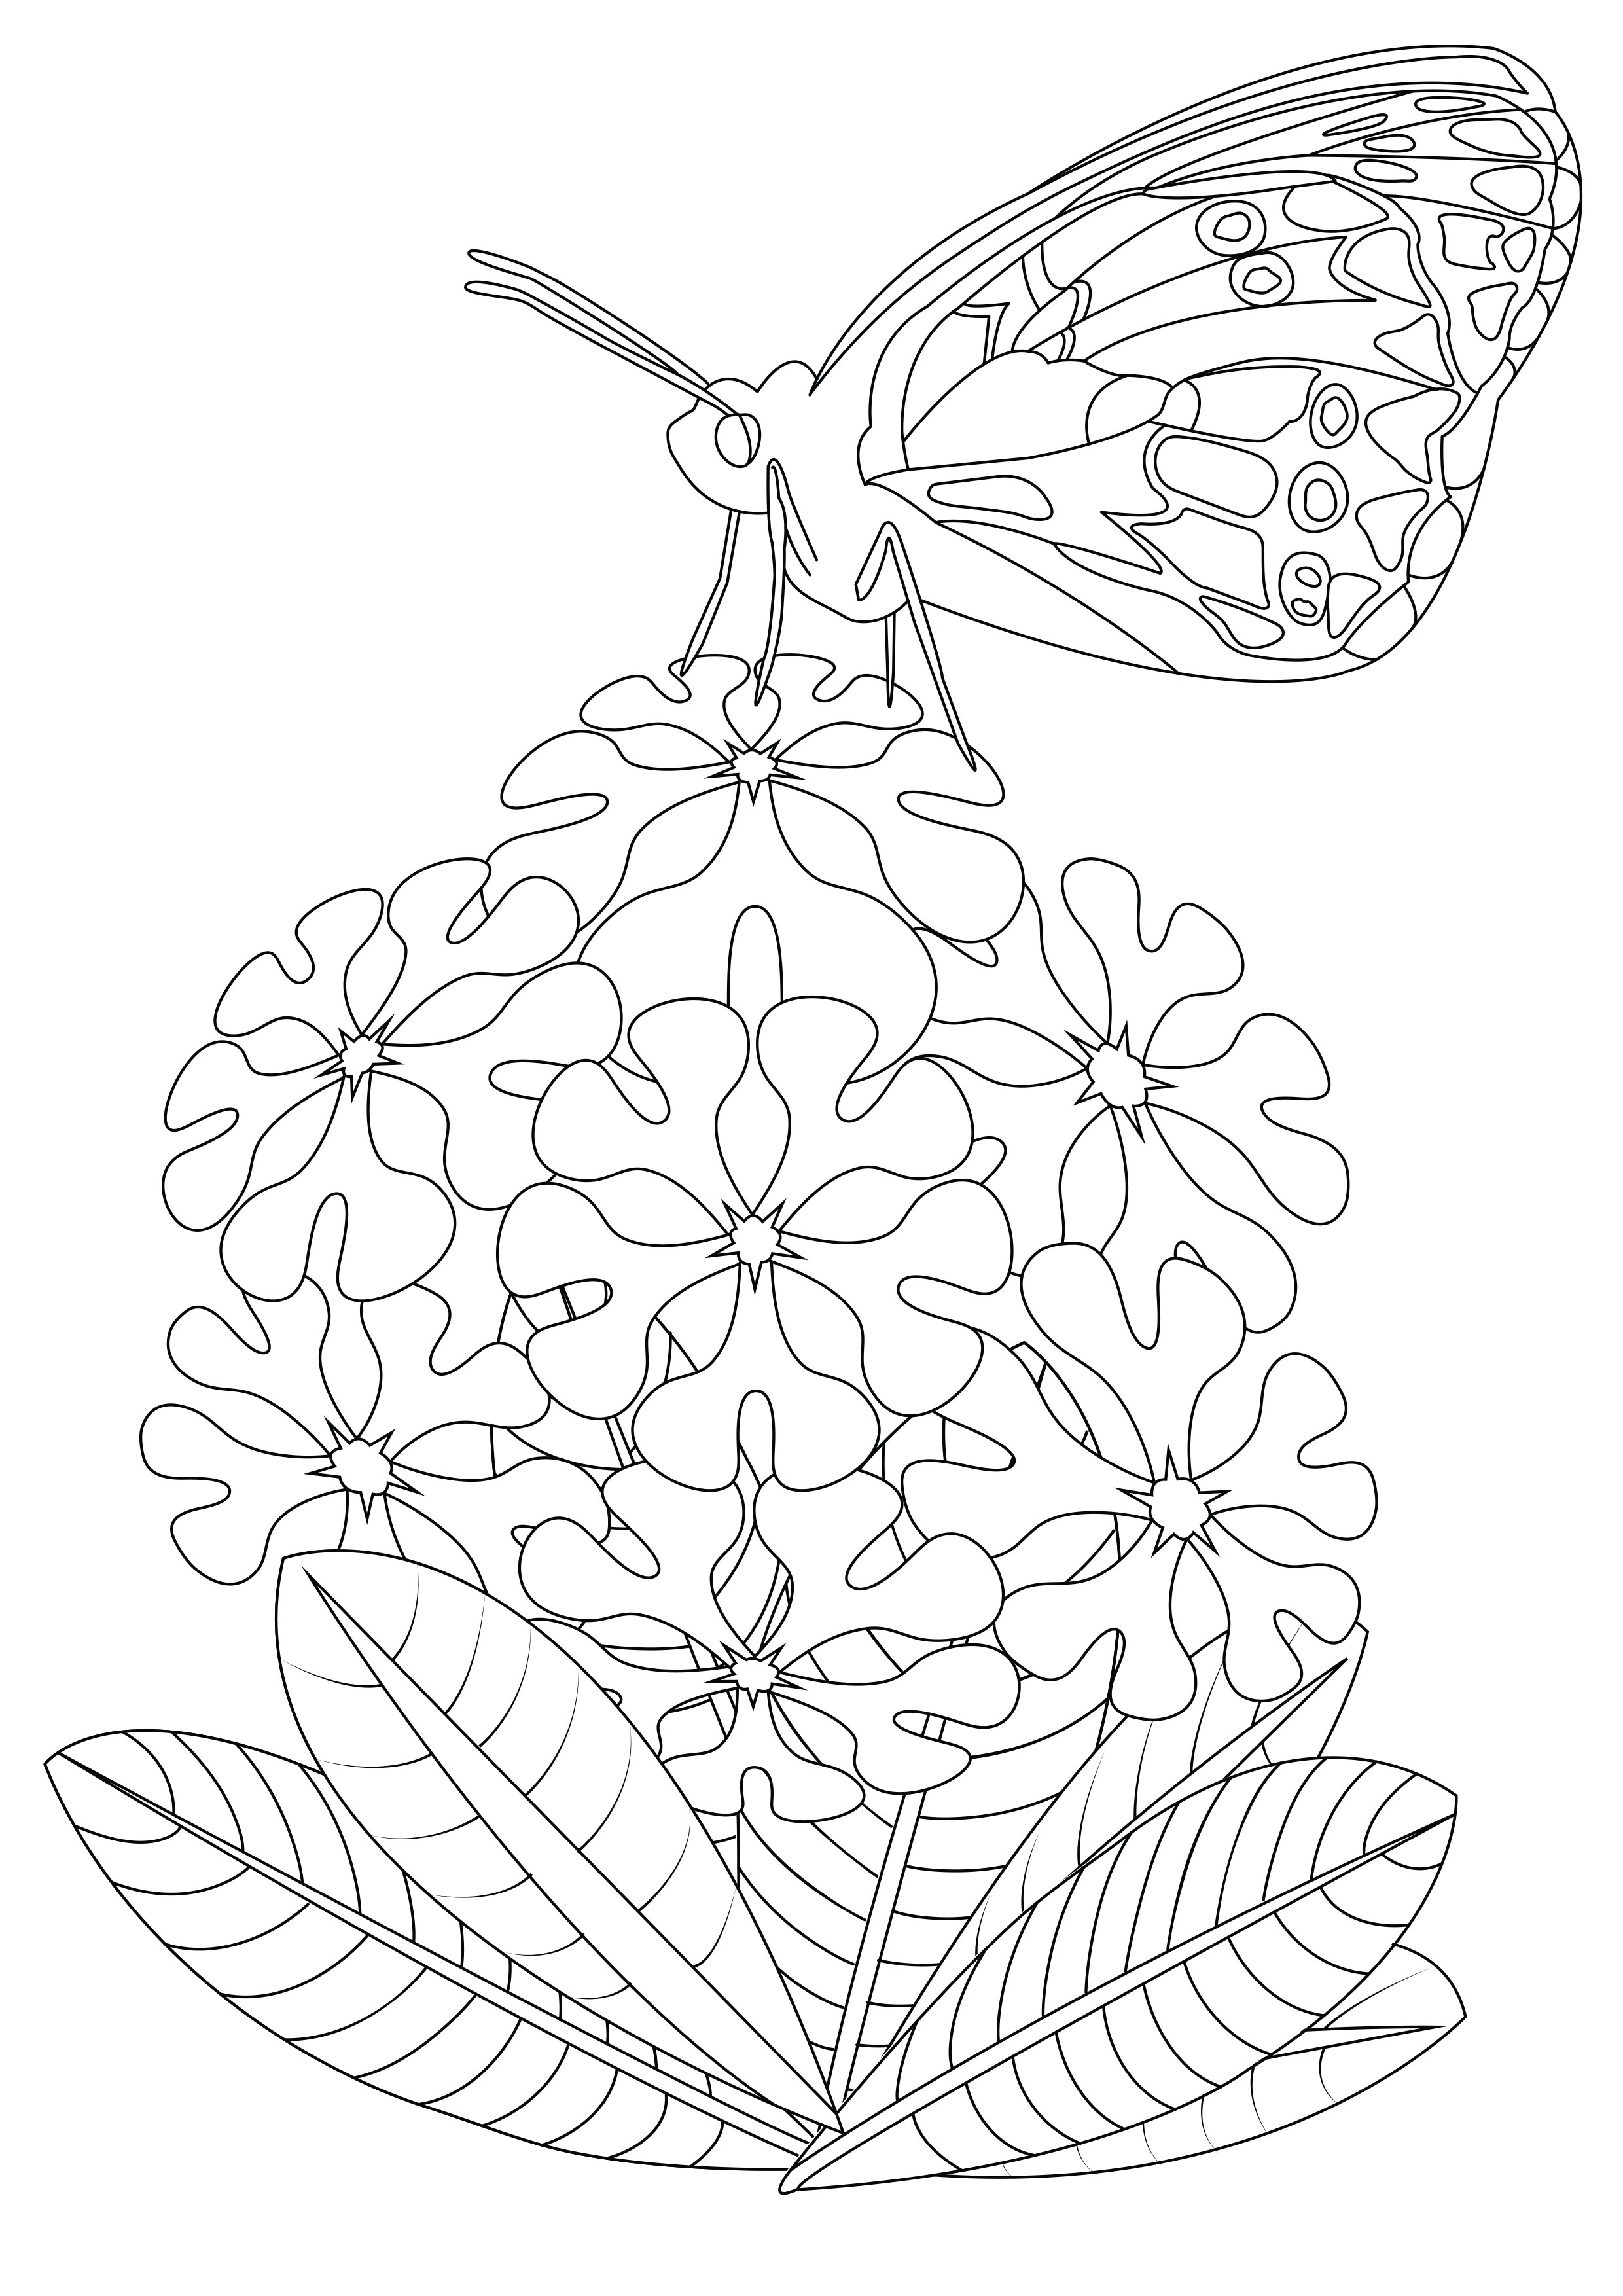 Butterfly on flowers 2 - Butterflies & insects Adult Coloring Pages